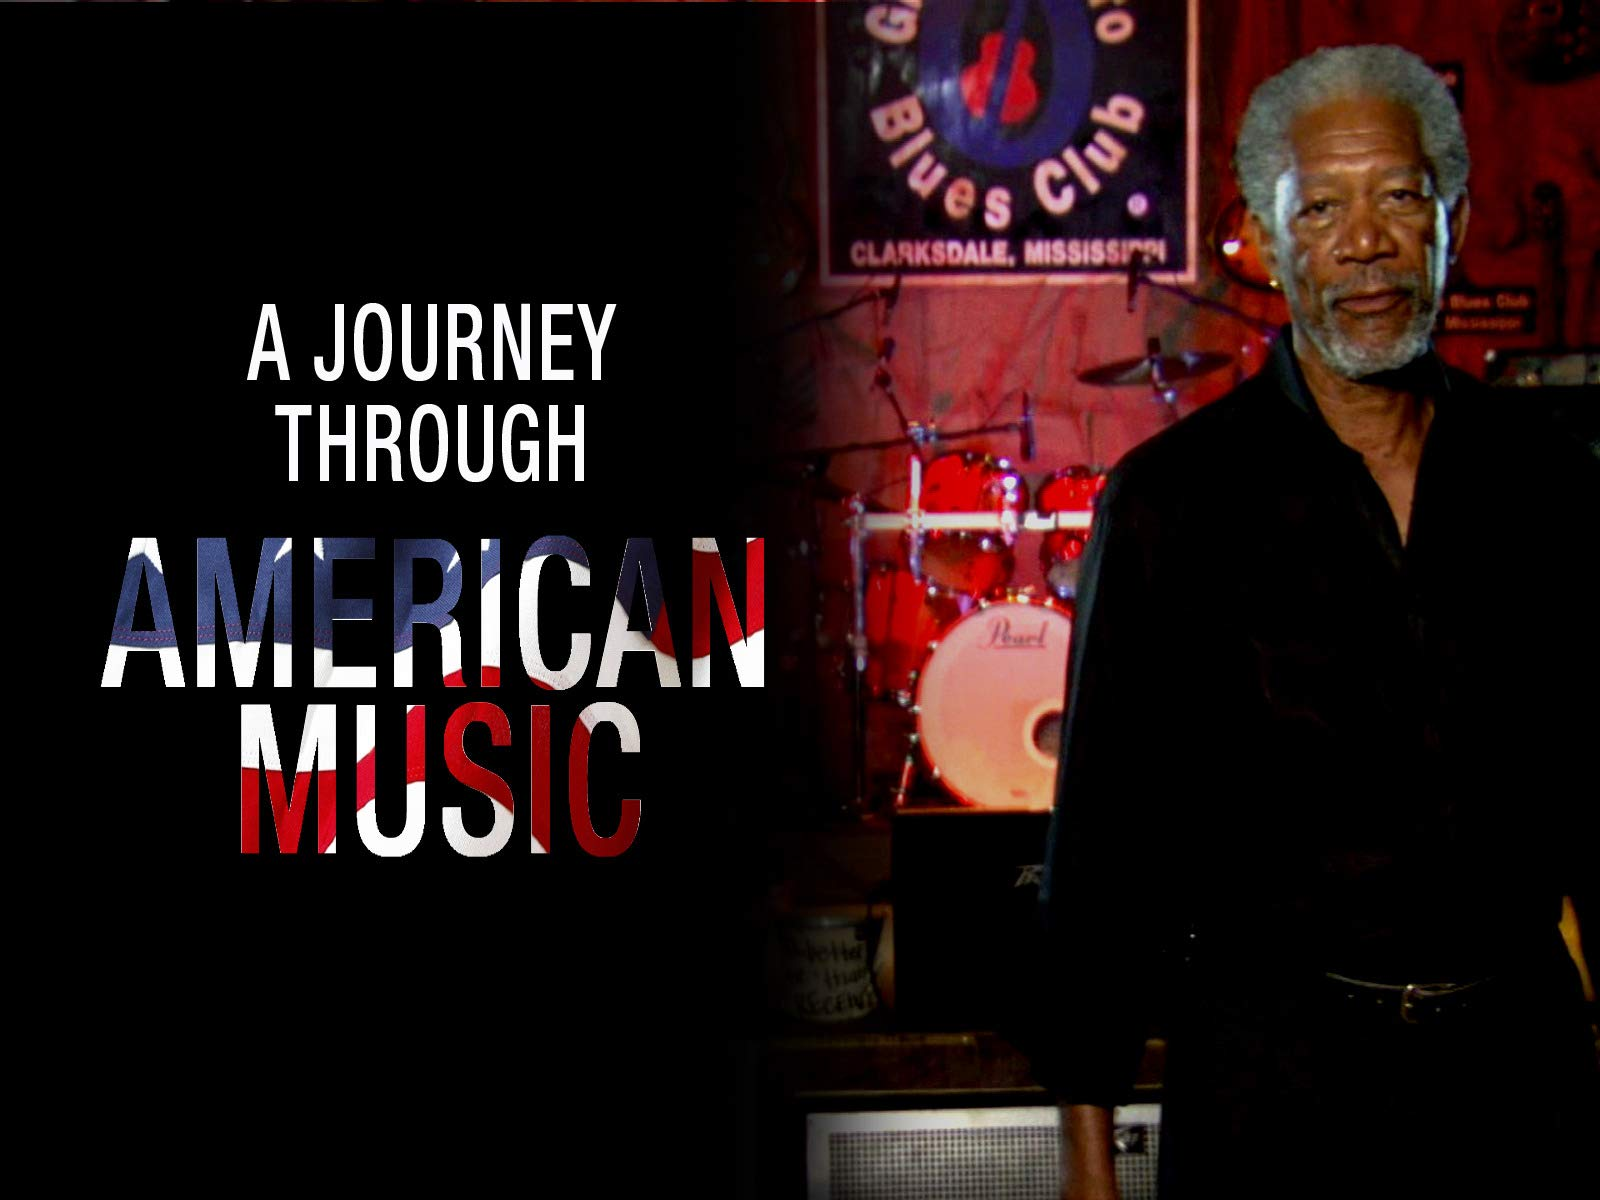 A Journey Through American Music